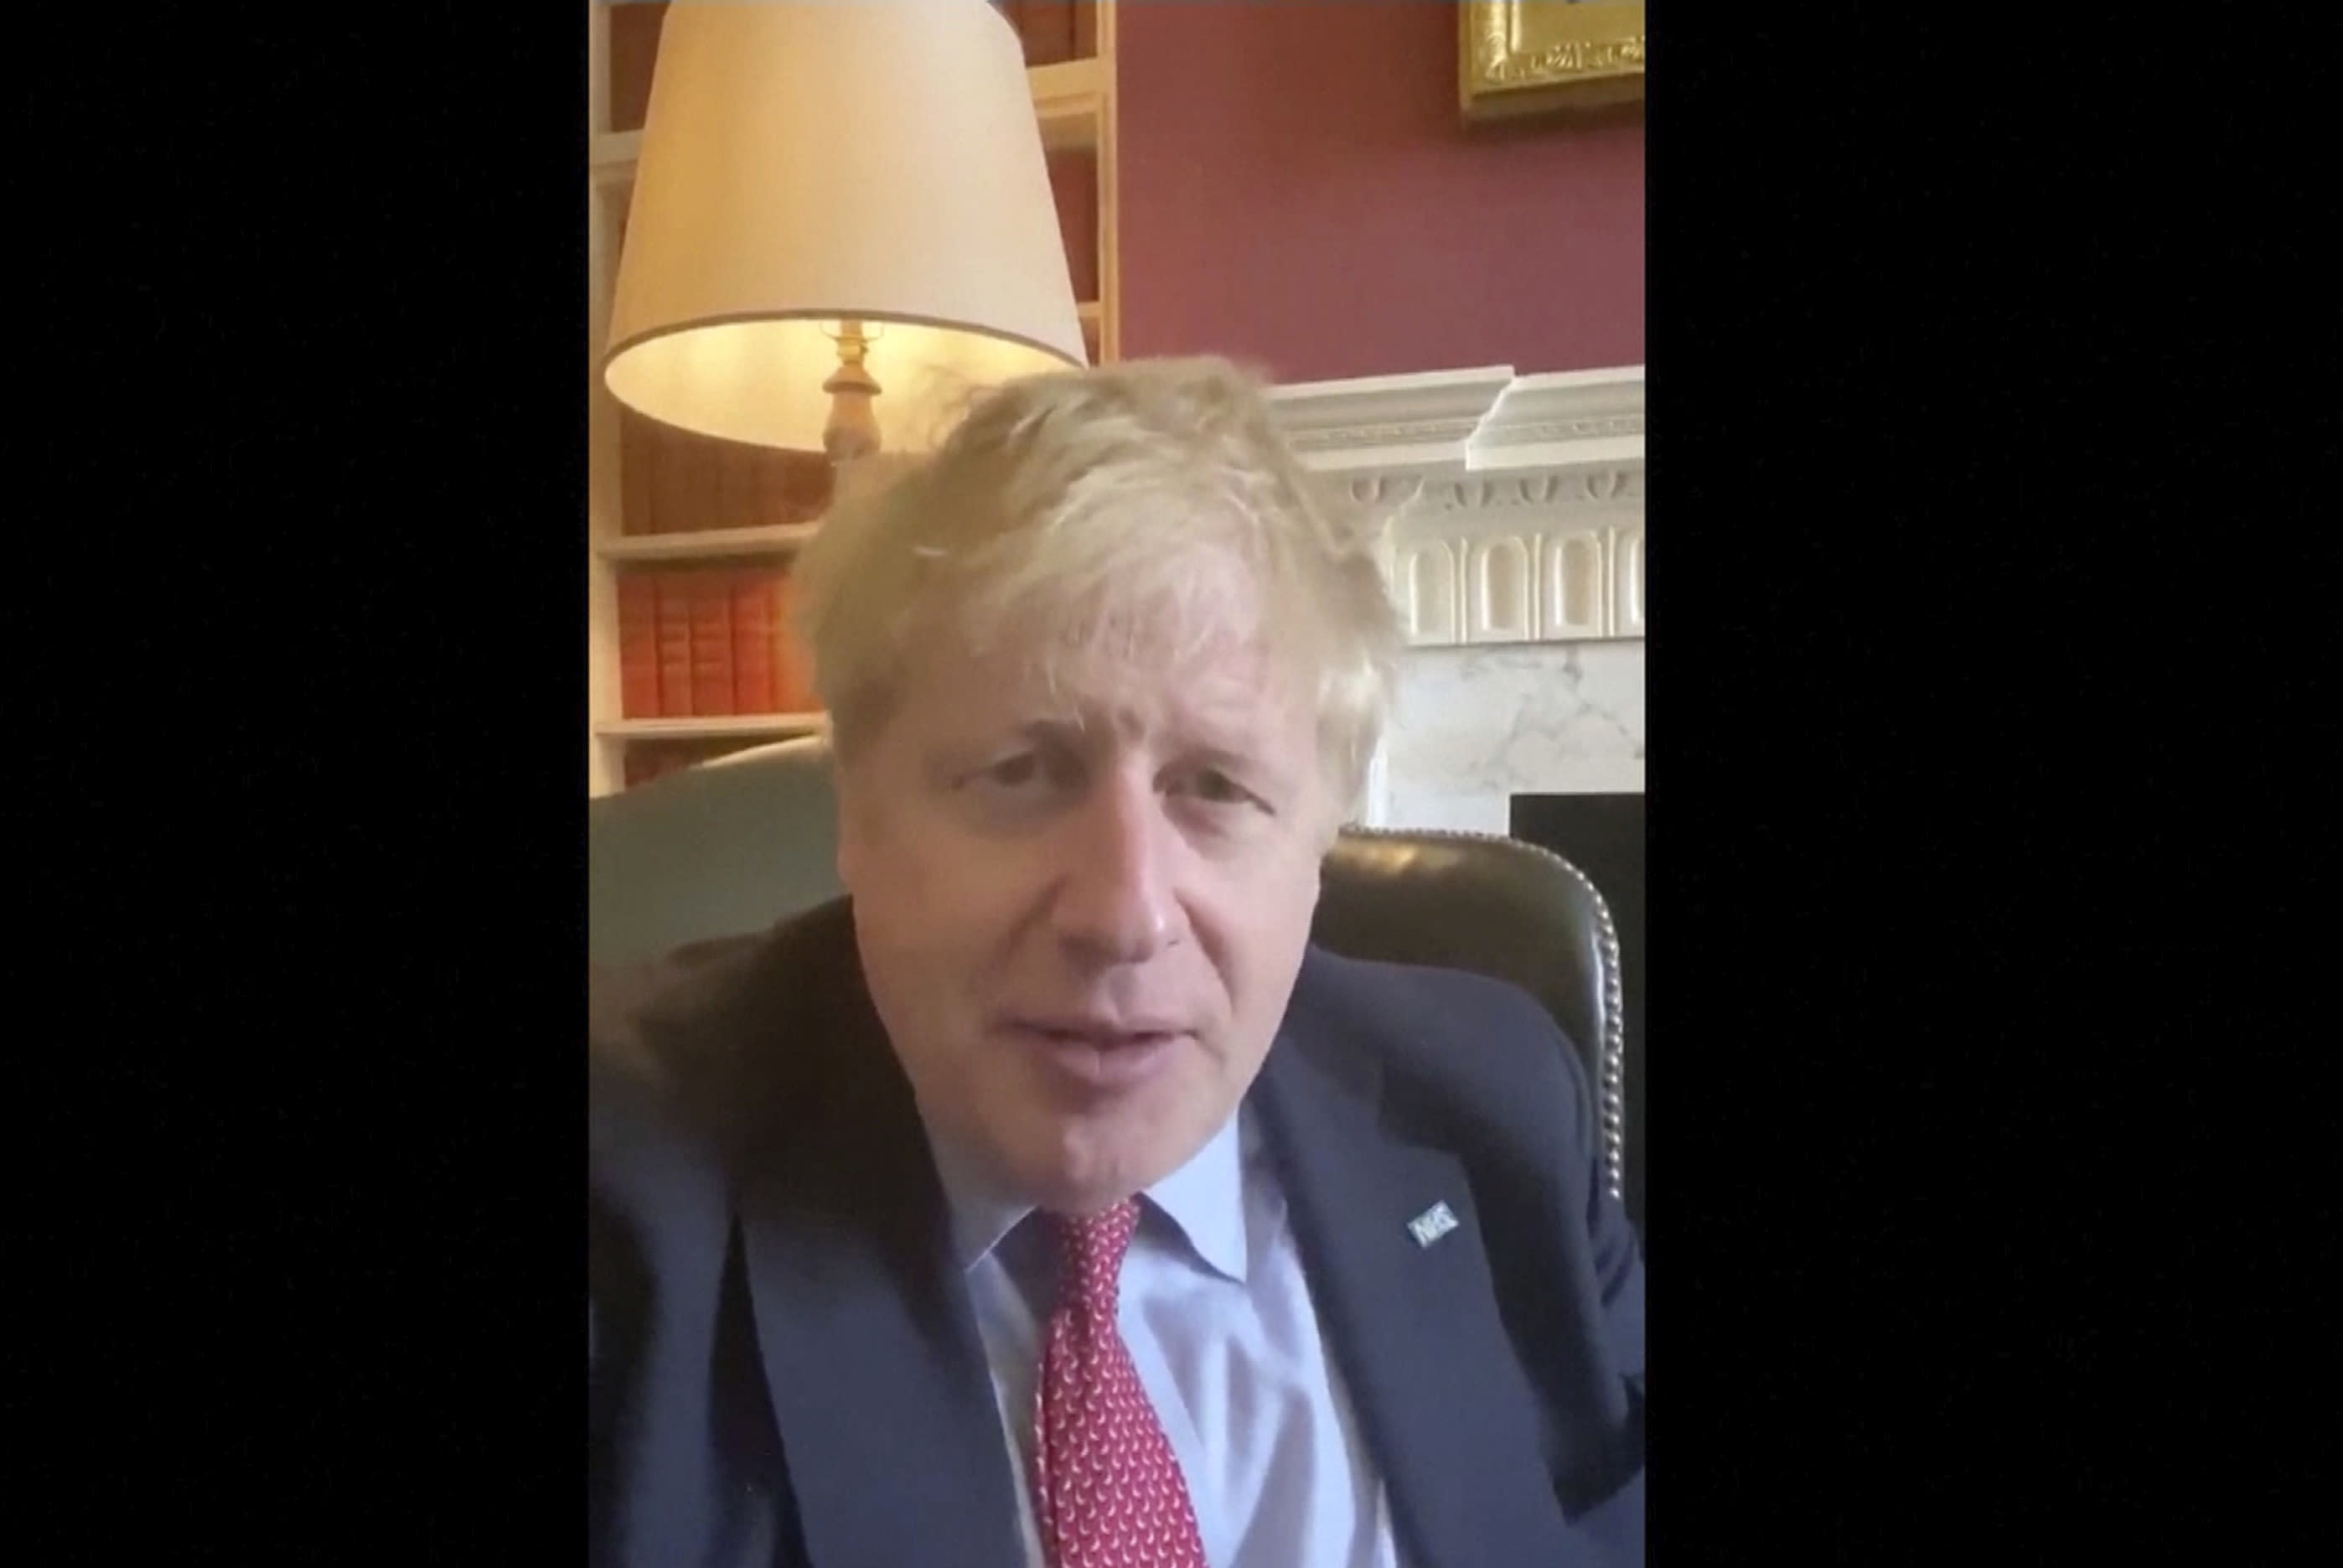 In this image taken from video of the TWITTER/@BorisJohnson, Britain's Prime Minister Boris Johnson announces he has tested positive for the new coronavirus, Friday March 27, 2020. Johnson's office said he was tested after showing mild symptoms and was now self-isolating, but would continue to lead the country's response to COVID-19. (TWITTER/@BorisJohnson via AP)